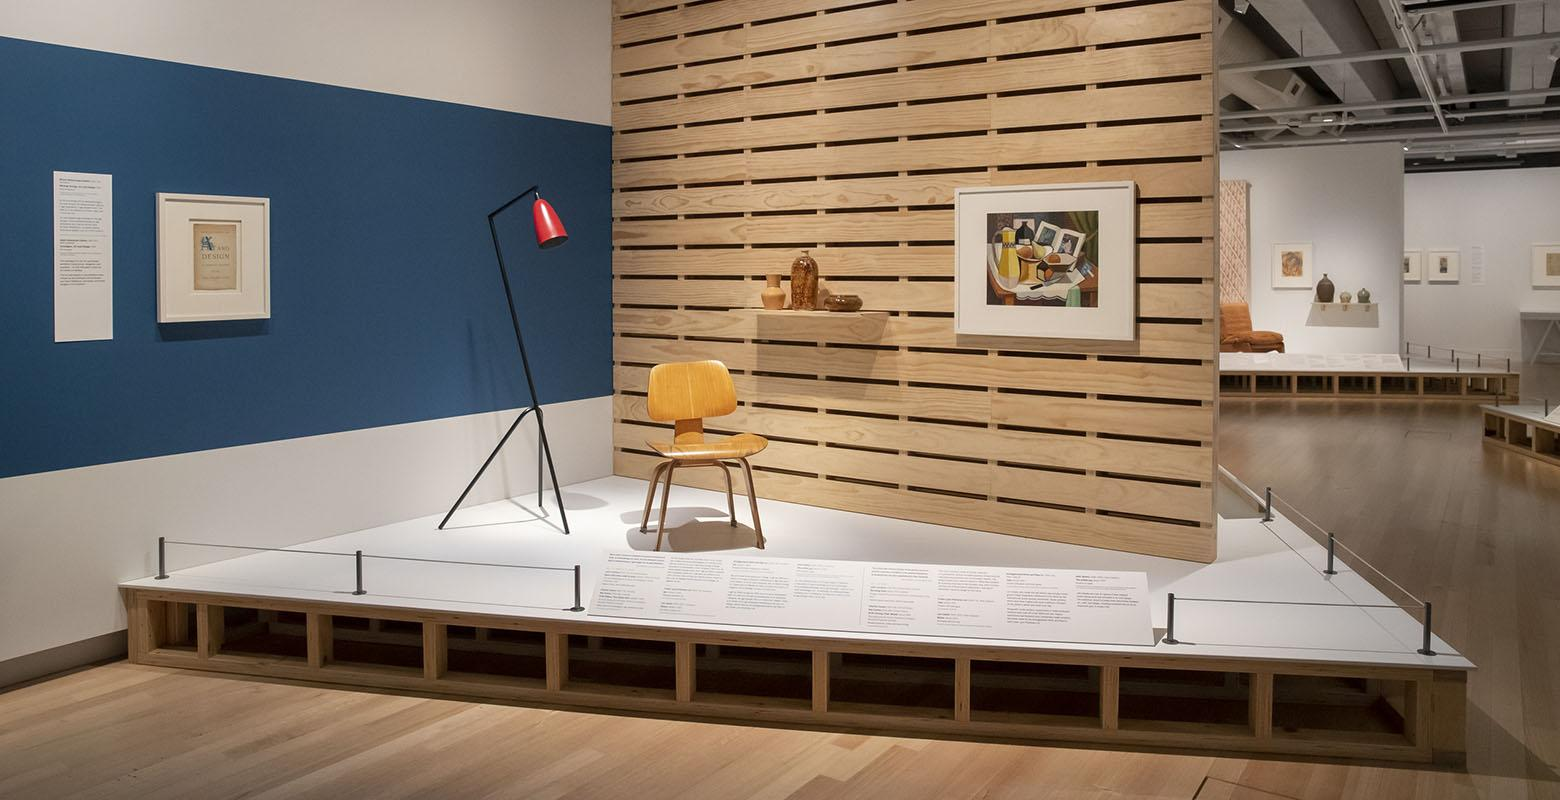 Photo of exhibition view. On a raised platform sits a chair and lamp, with a wooden wall behind. On the wall is a painting of a still life and a shelf with ceramics